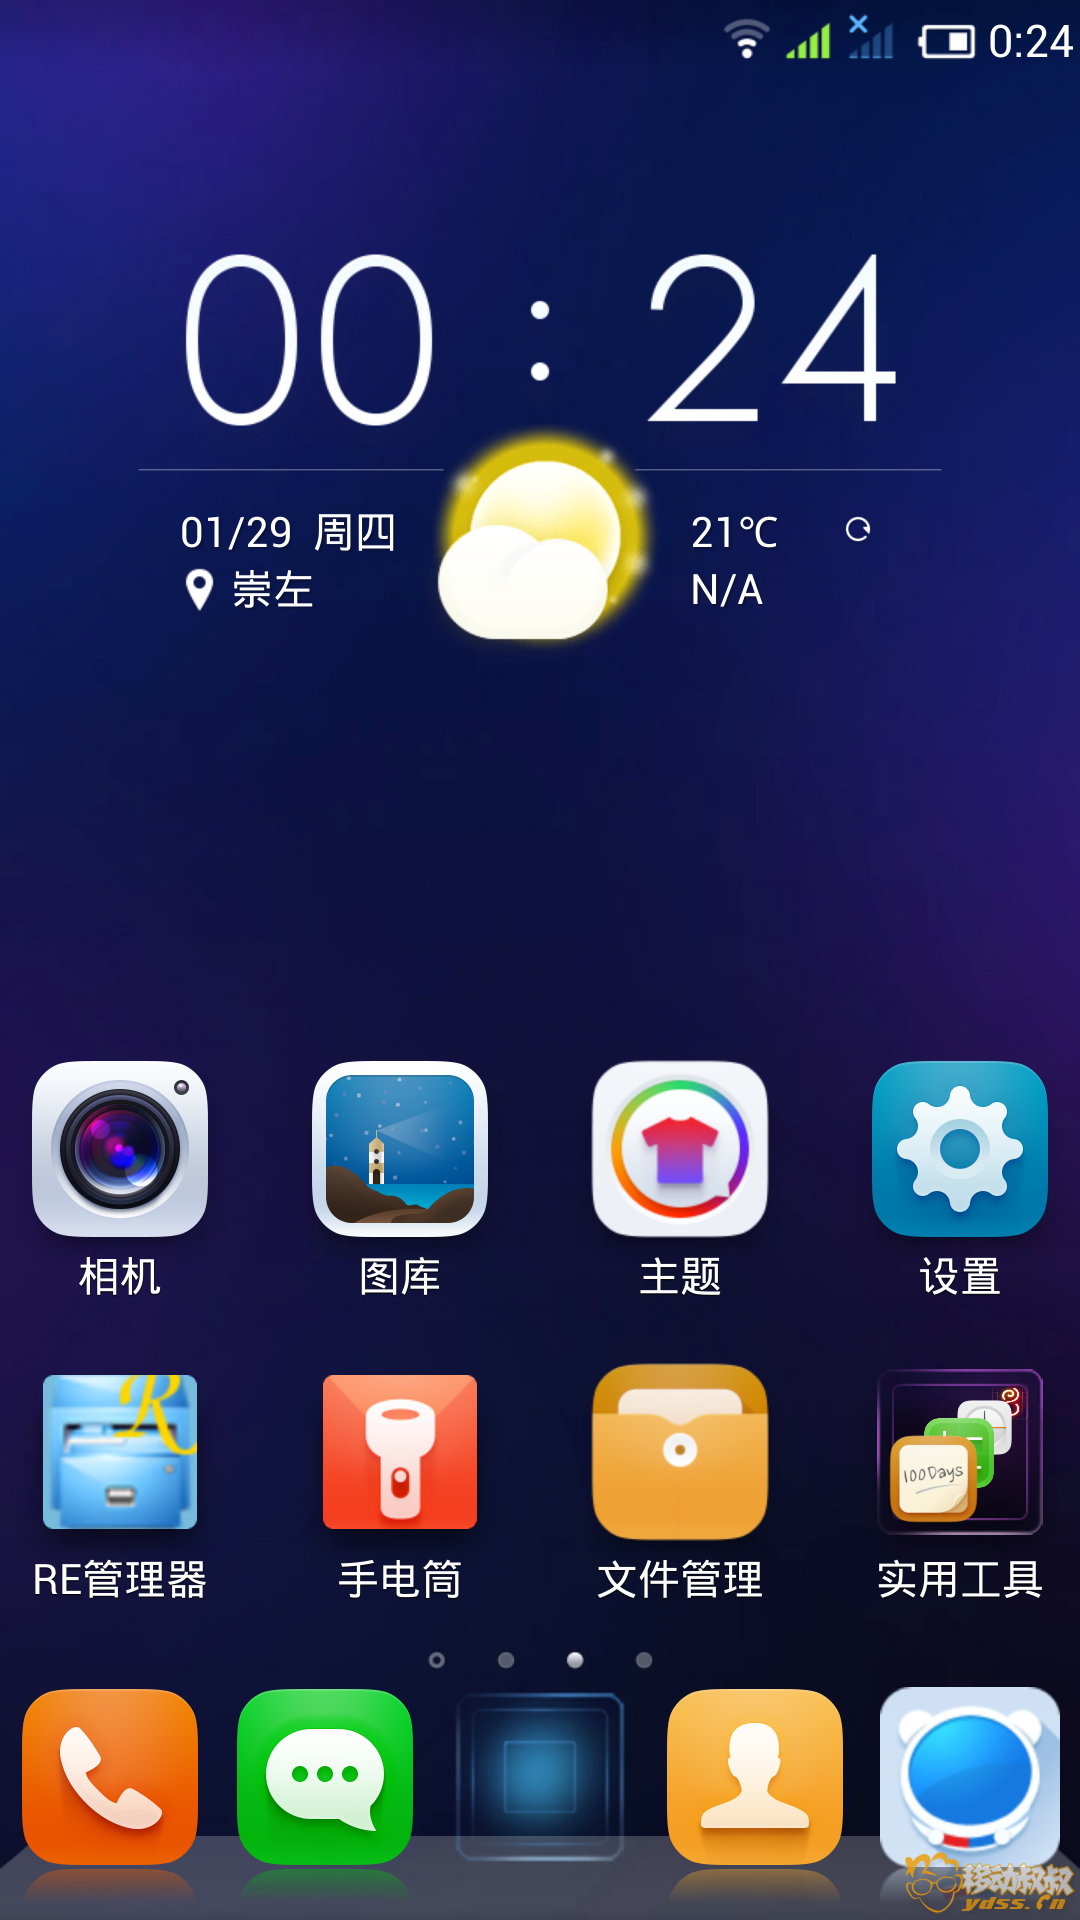 Screenshot_2015-01-29-00-24-23.png